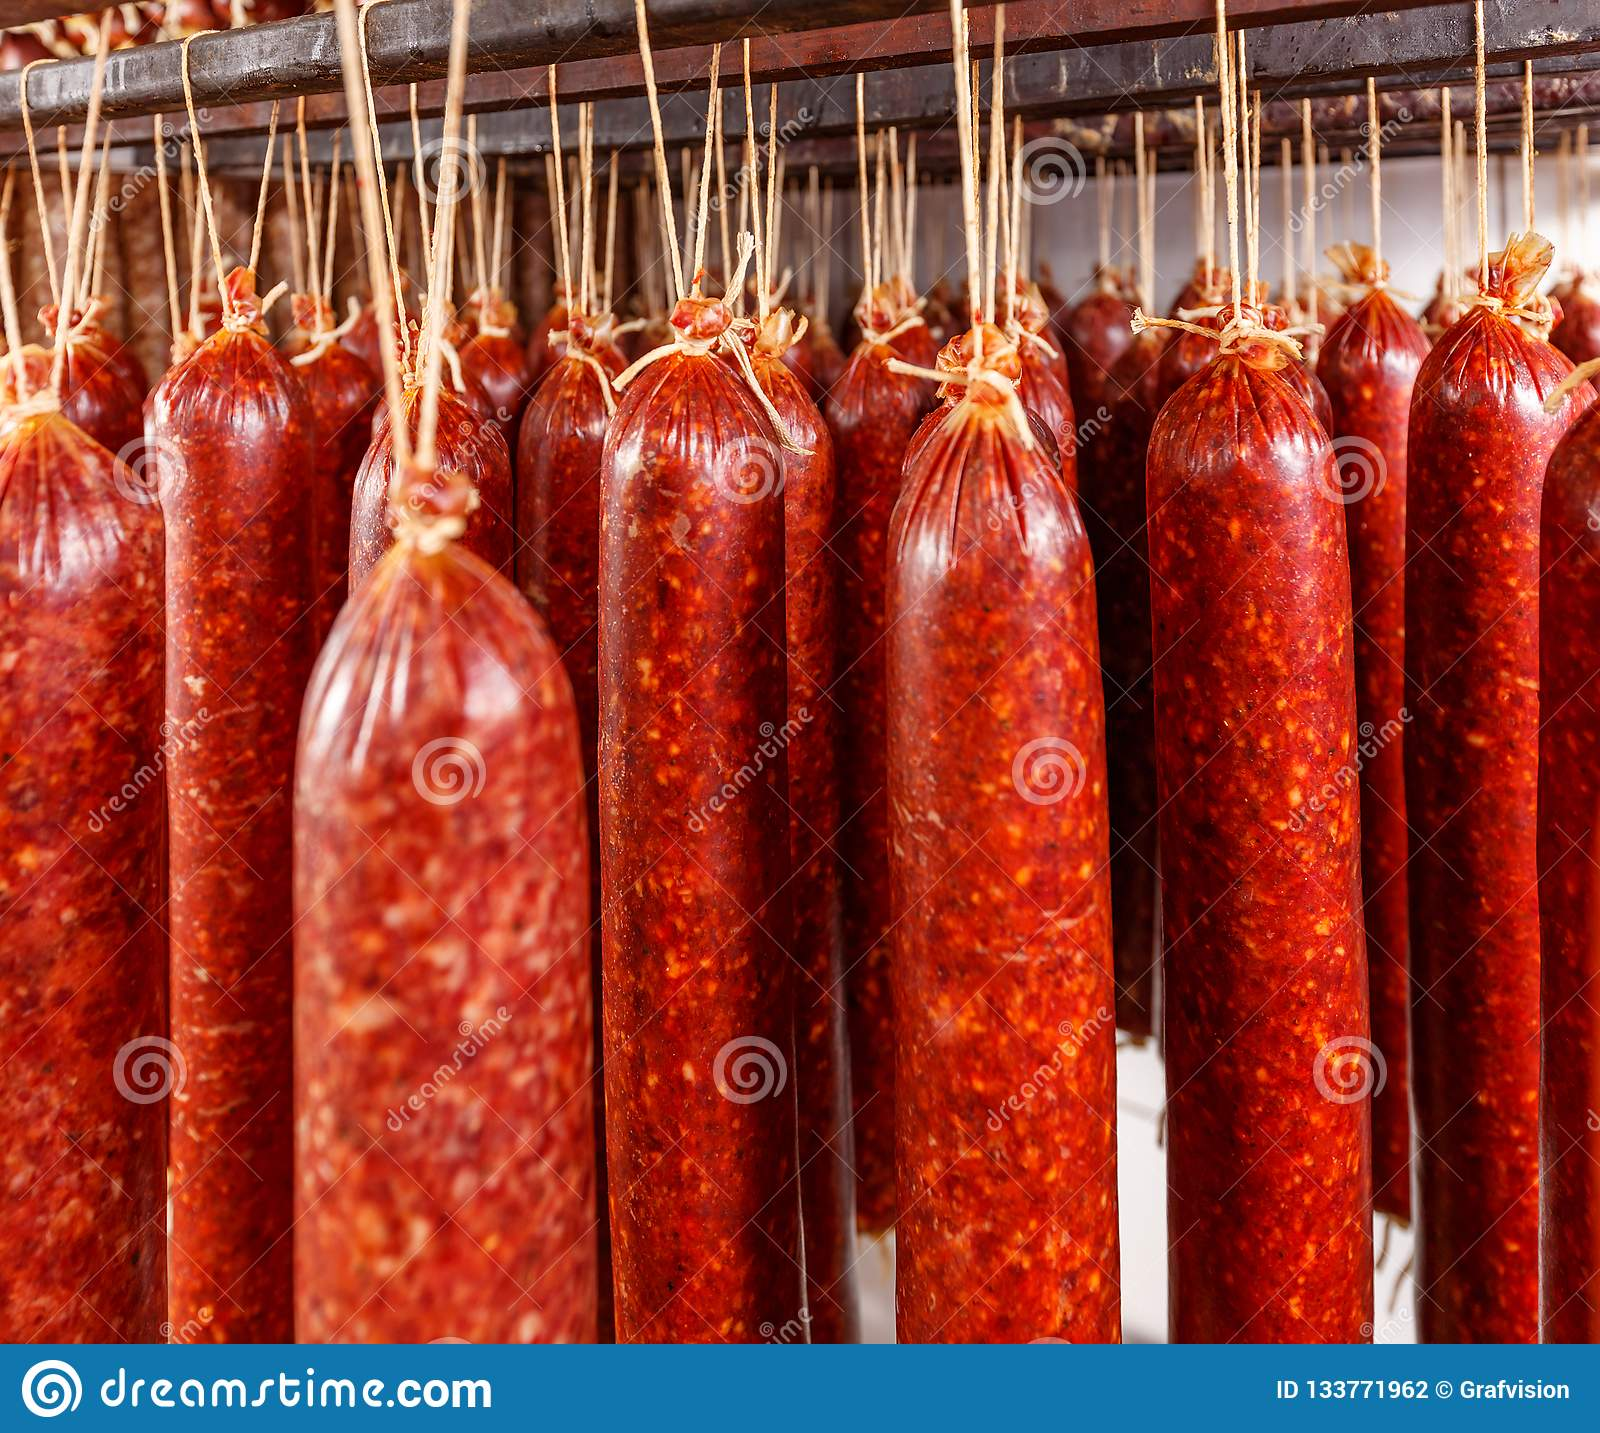 Salami hanging on a rope